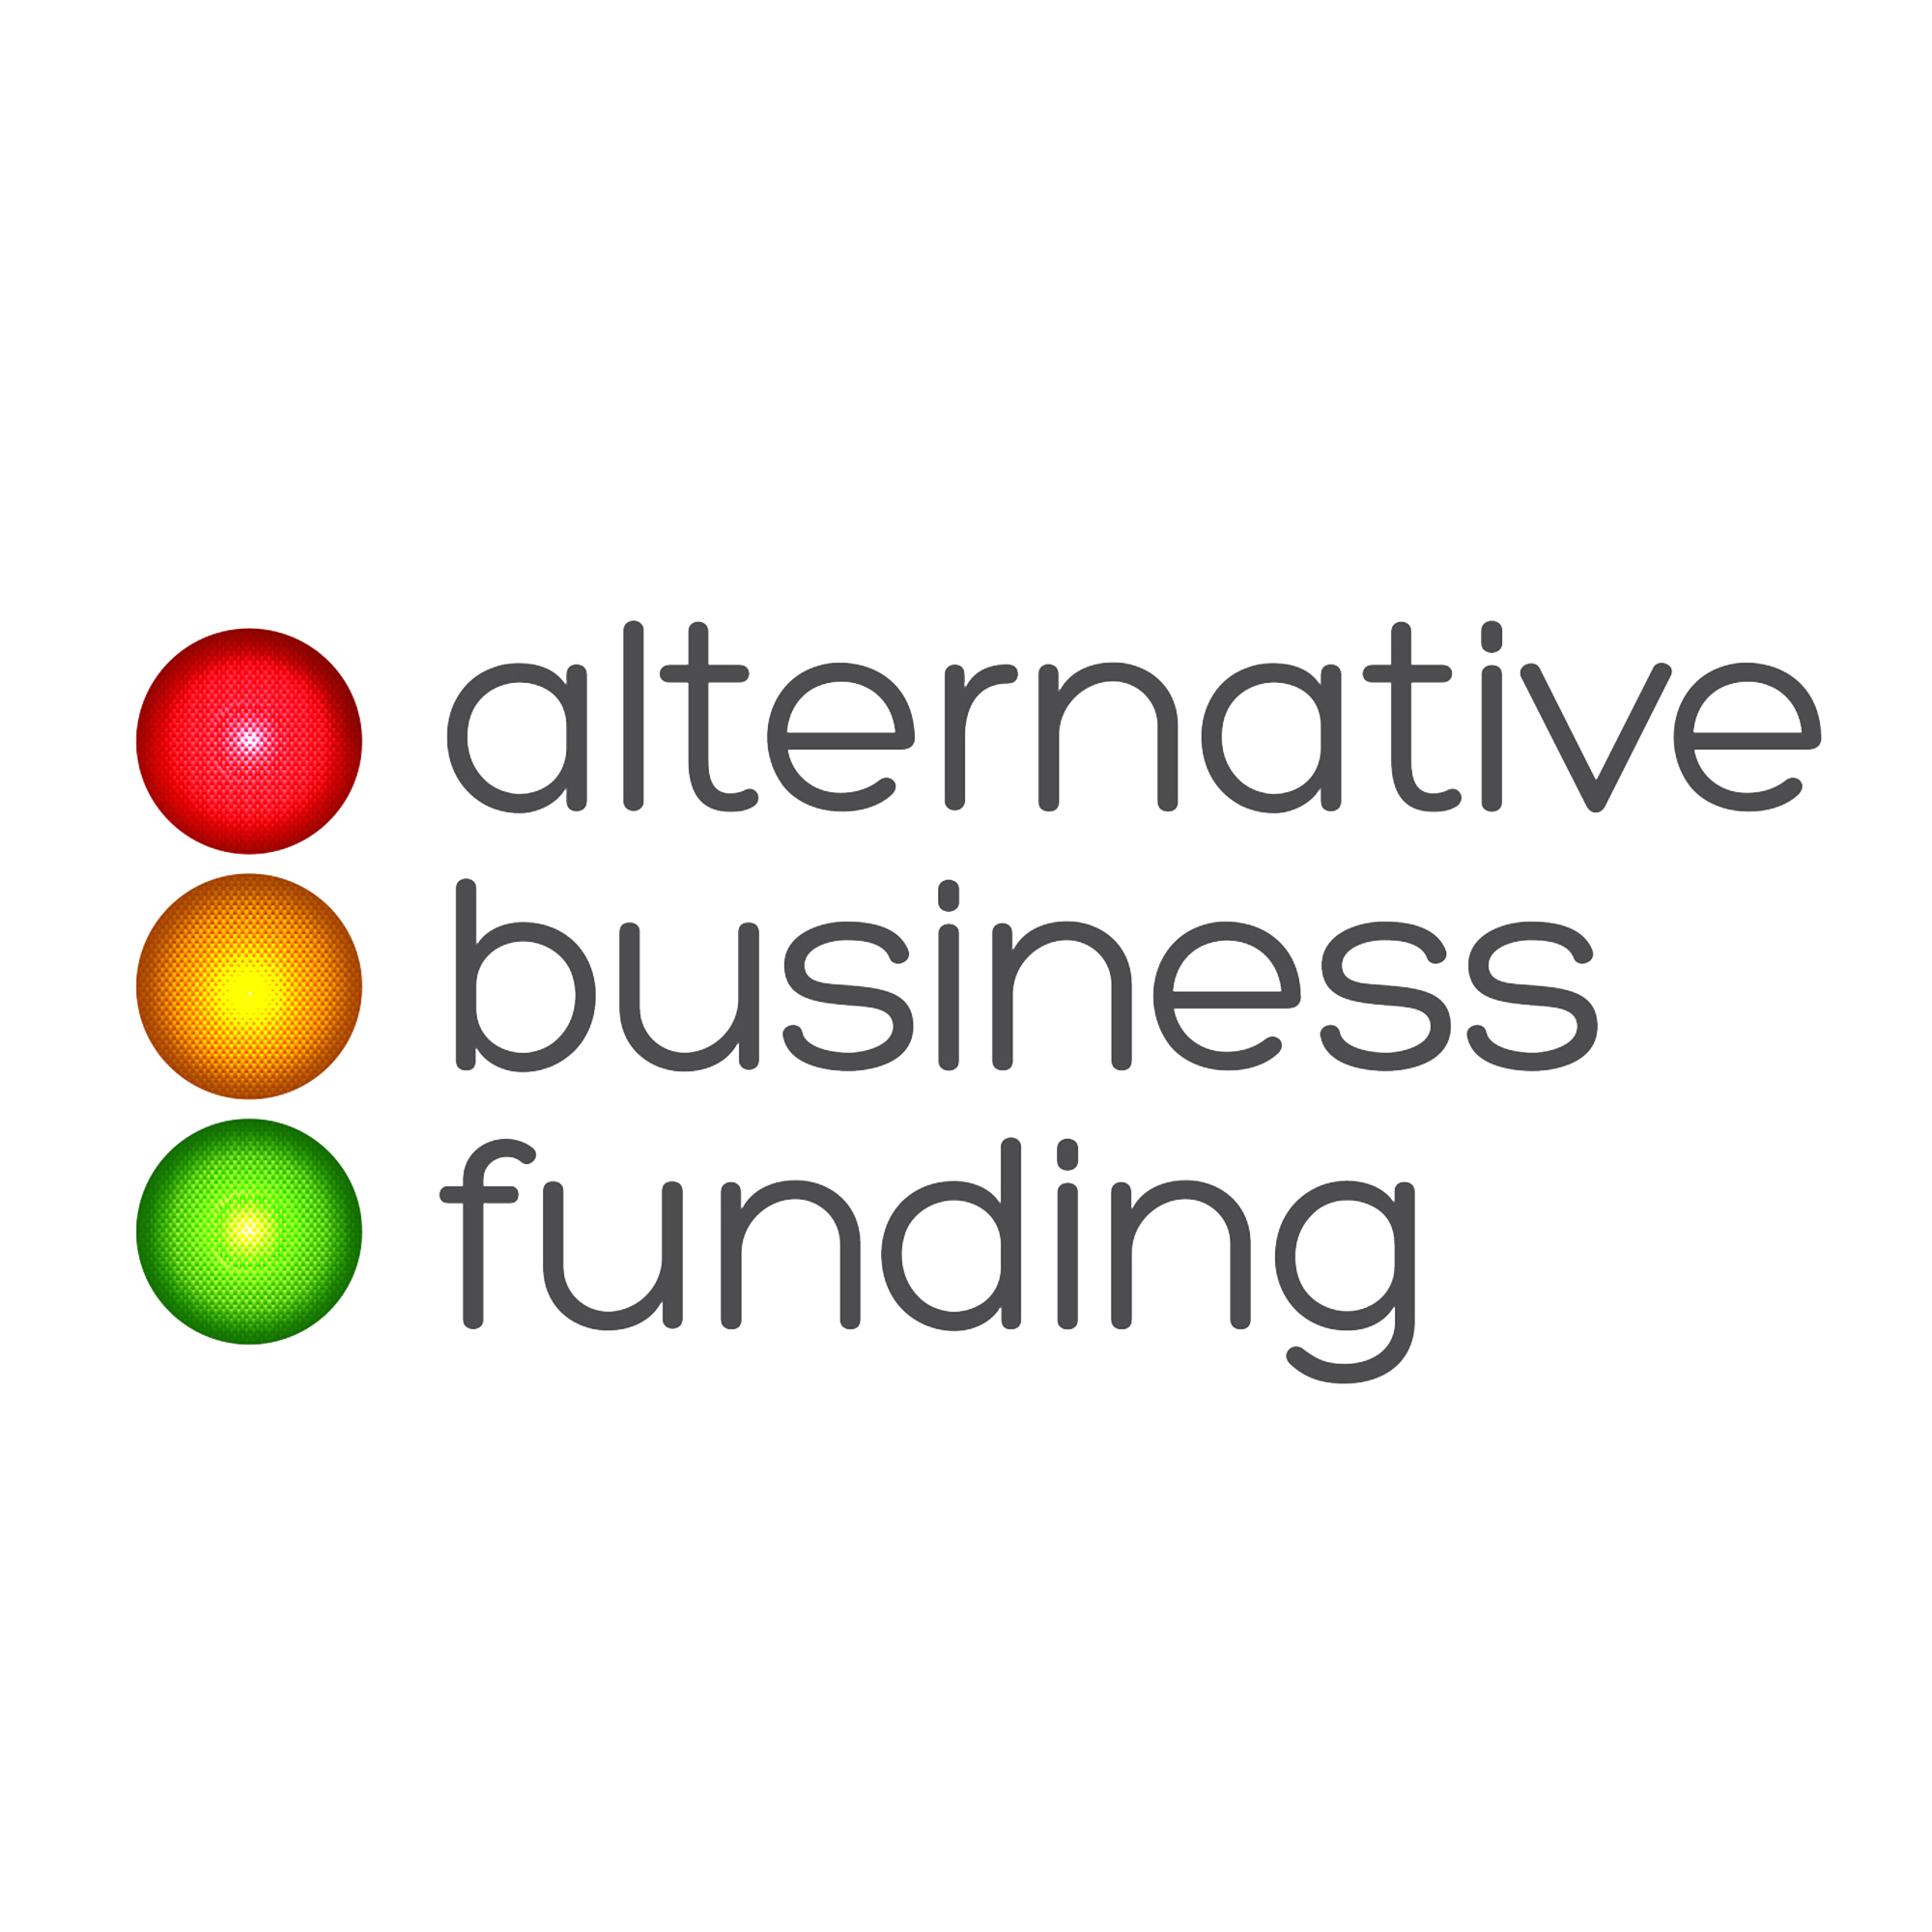 Alternative Business Funding logo